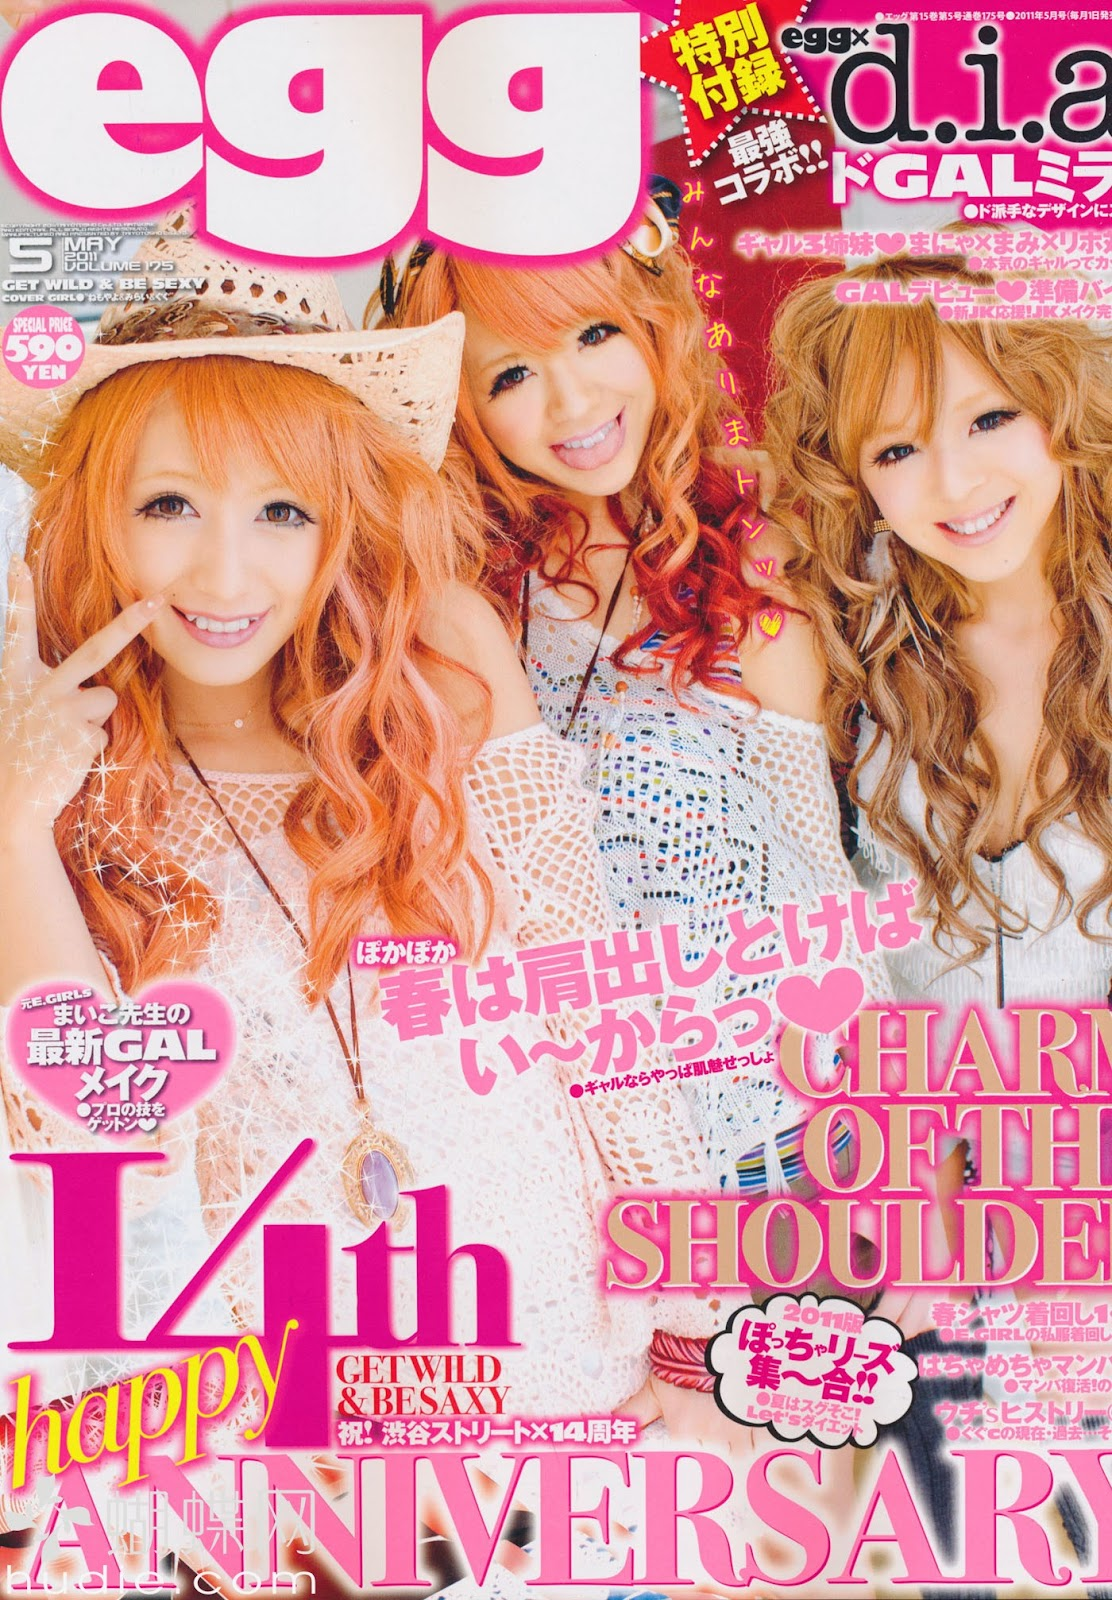 egg may 2011 gyaru magazine scans